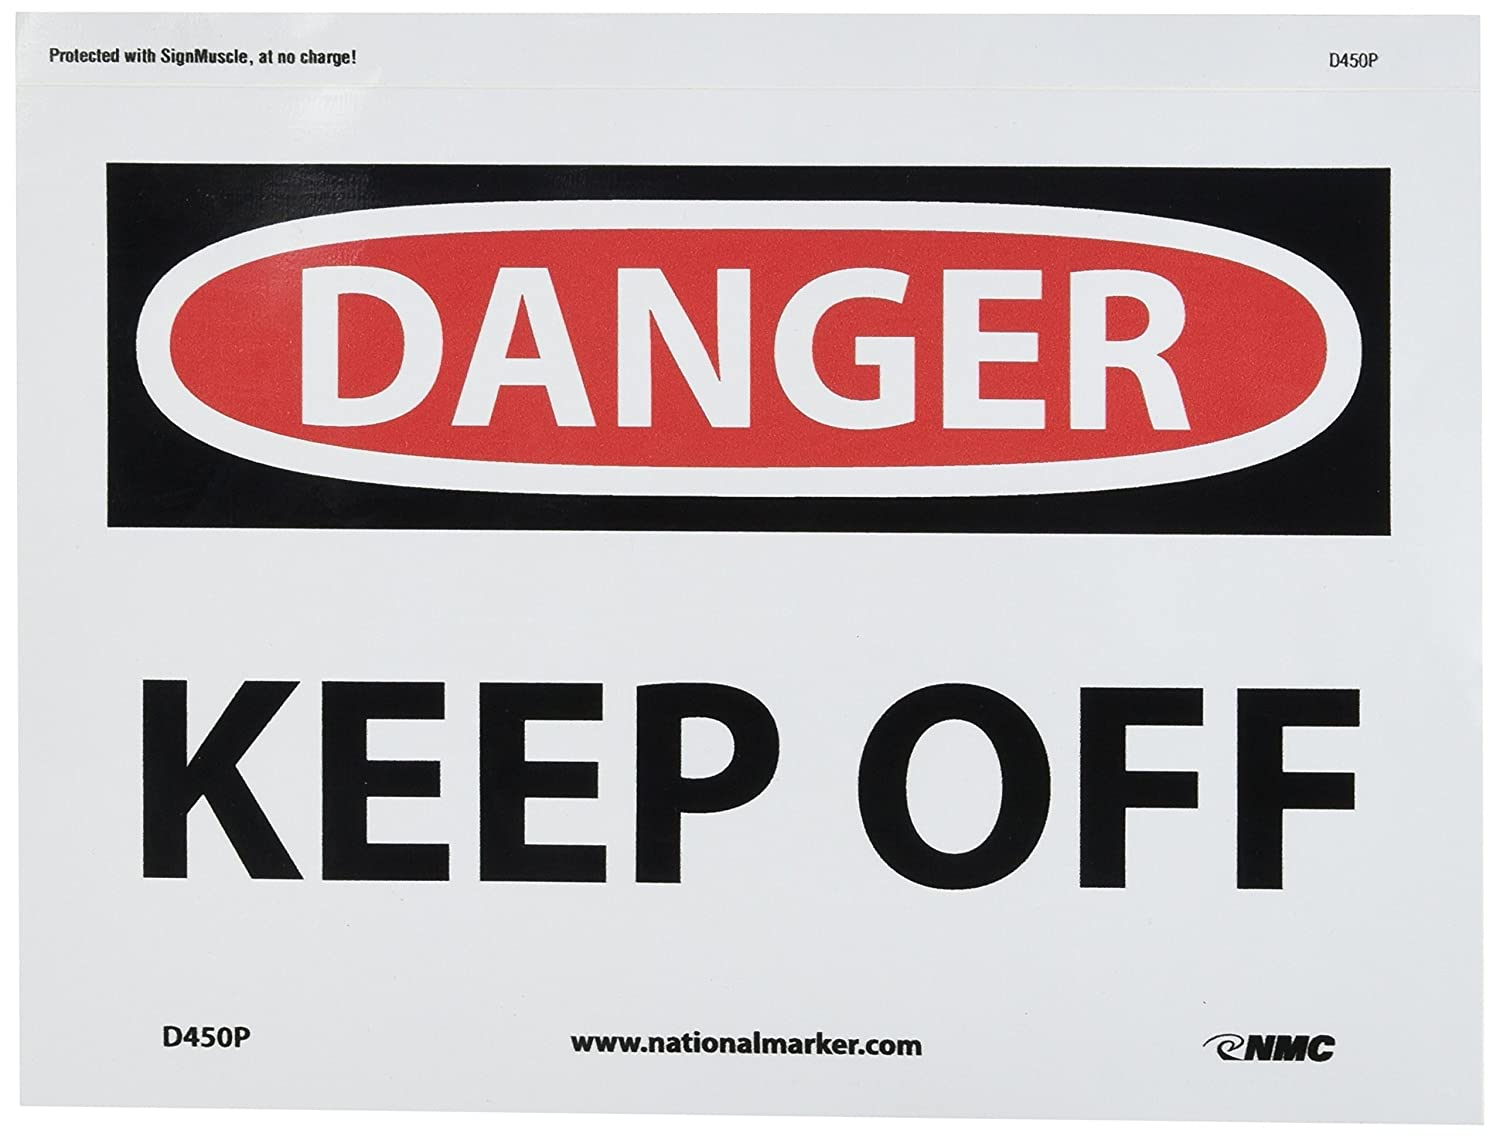 KEEP OFF 10 Length x 7 Height 10 Length x 7 Height Black//Red on White Legend DANGER Pressure Sensitive Adhesive Vinyl Legend DANGER NMC D450P OSHA Sign KEEP OFF